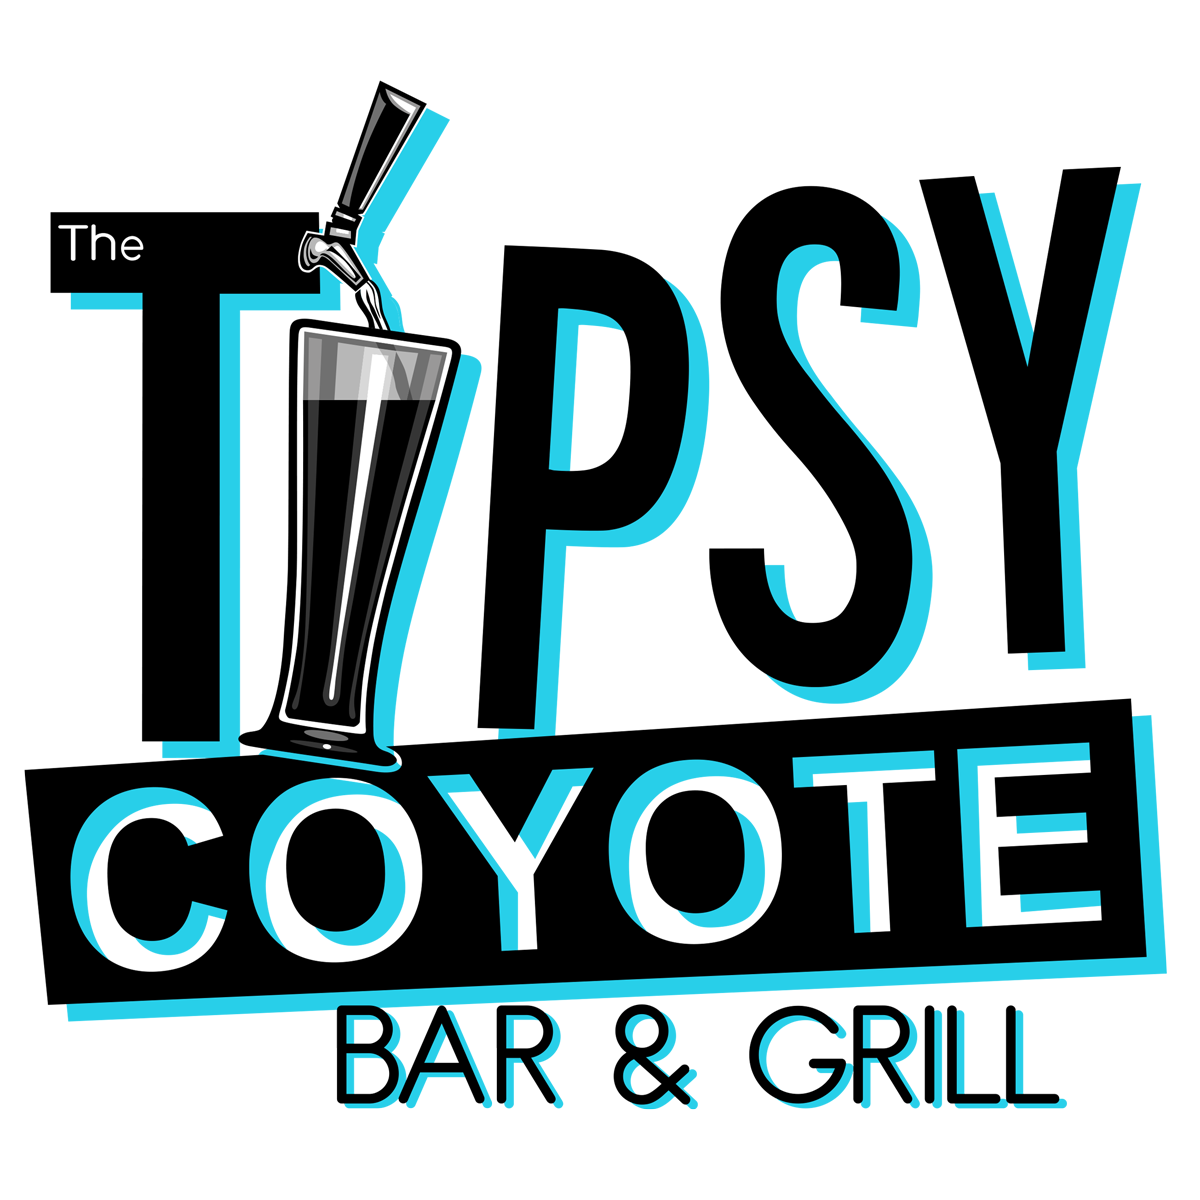 The Tipsy Coyote Bar & Grill